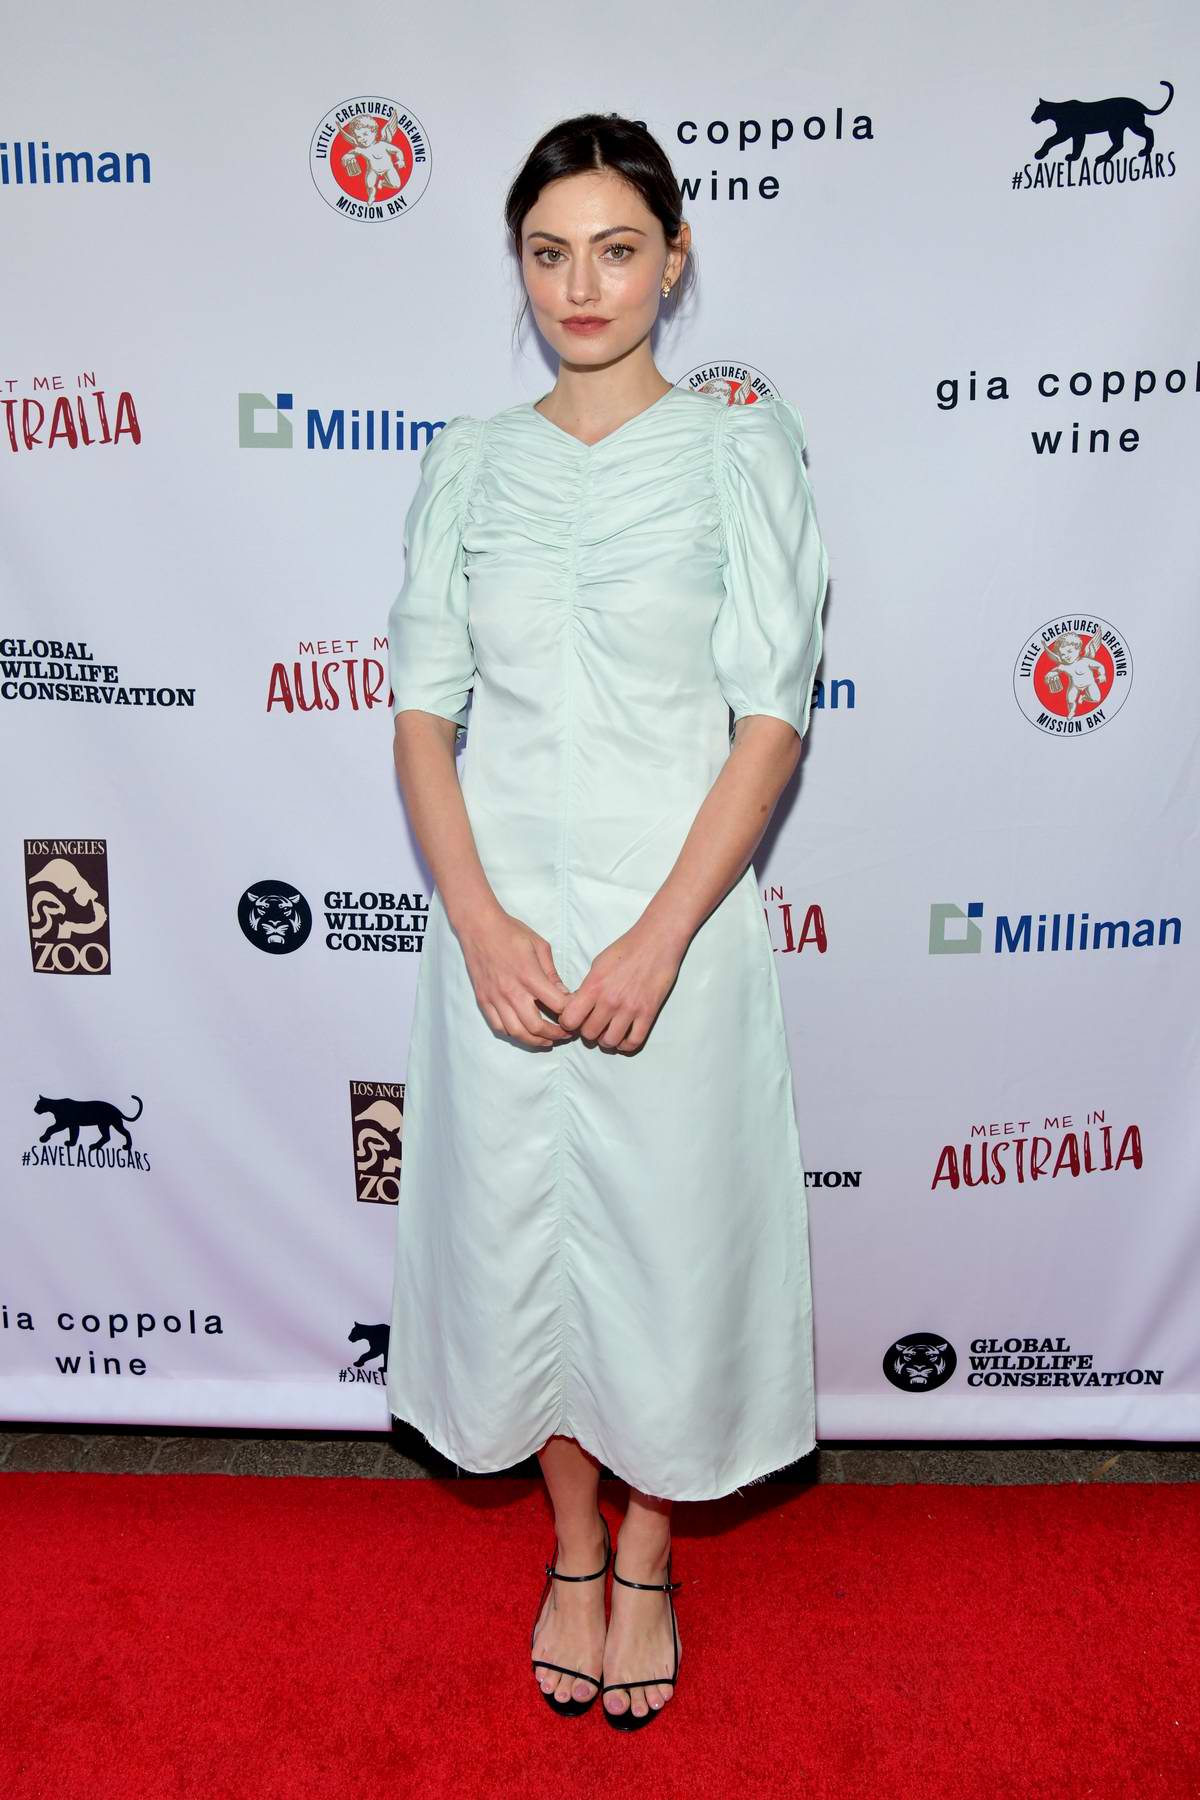 Phoebe Tonkin attends 'Meet Me In Australia' To Benefit Australia Wildfire Relief Efforts at Los Angeles Zoo, California